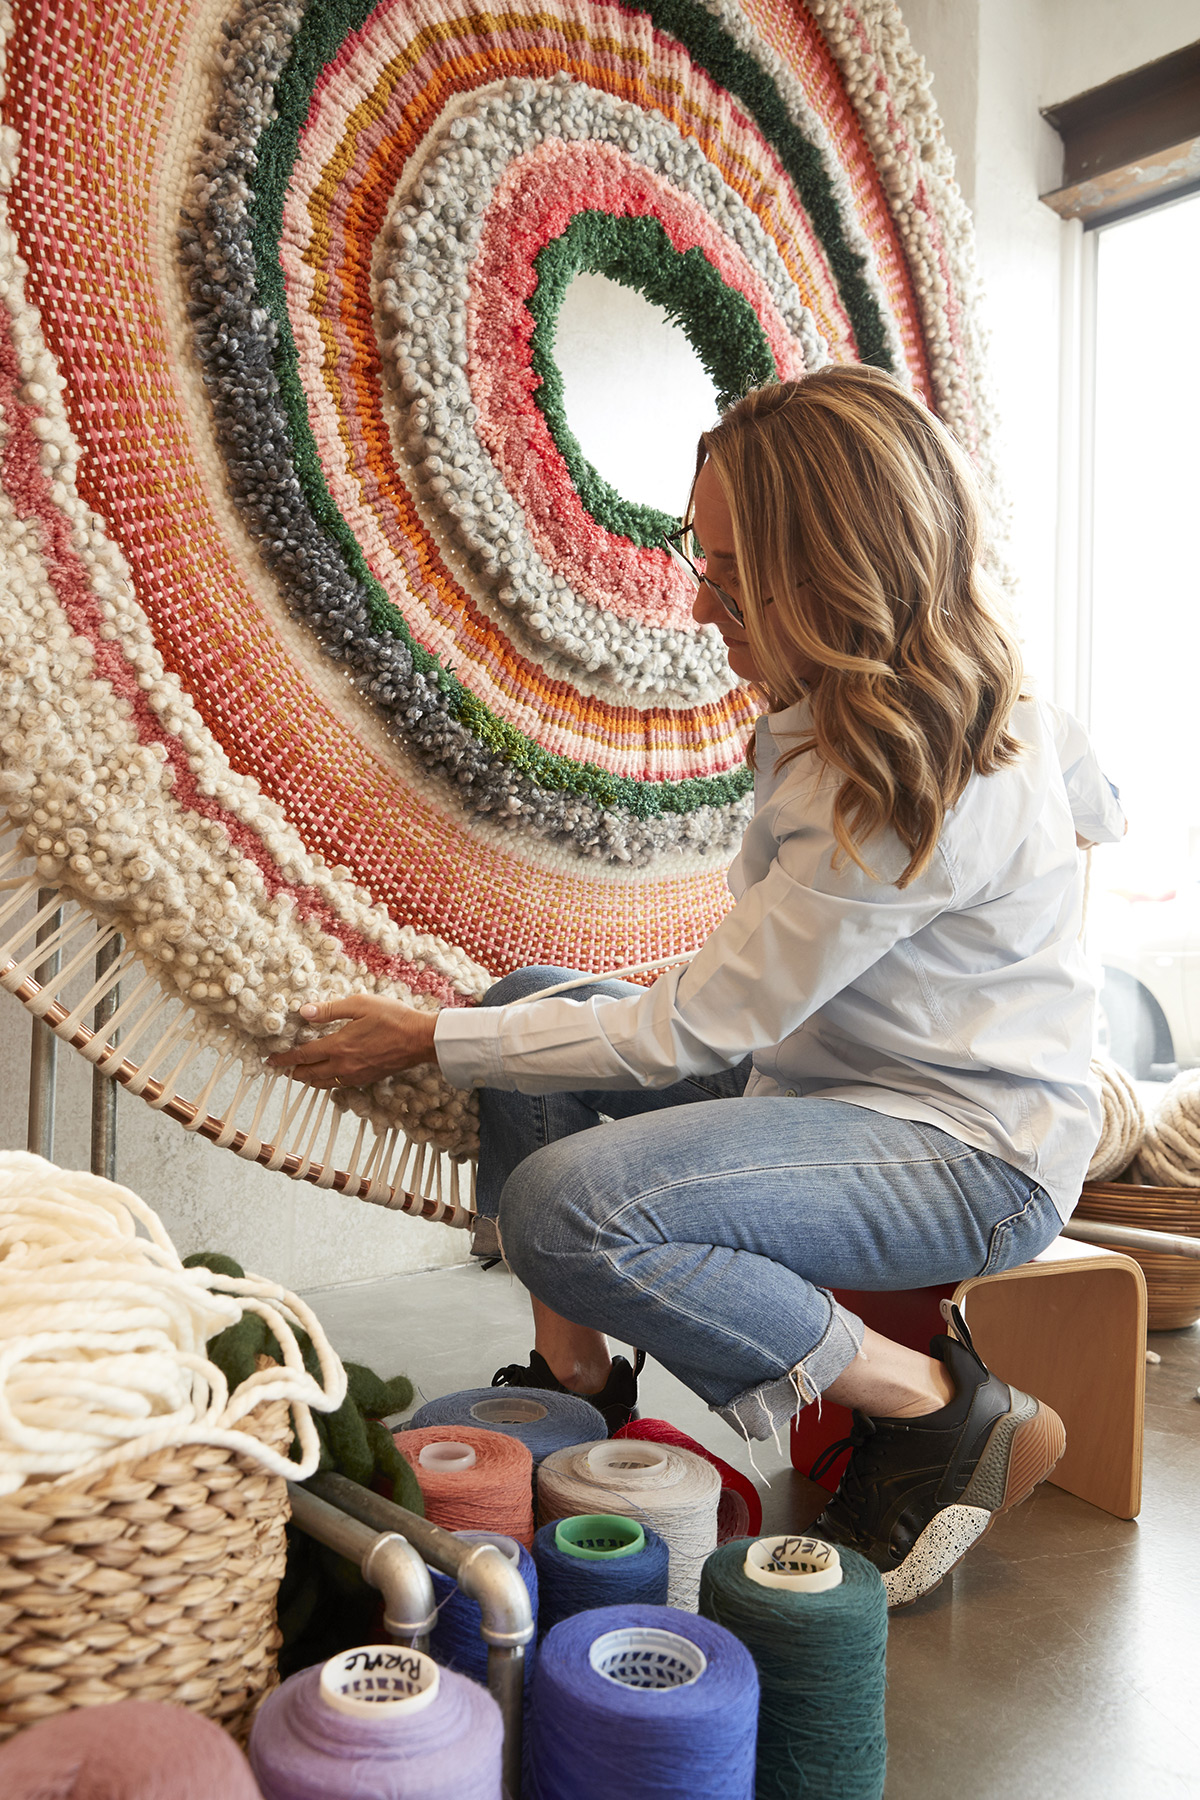 Concentric Circles of Tufted Wool by Artist Tammy Kanat